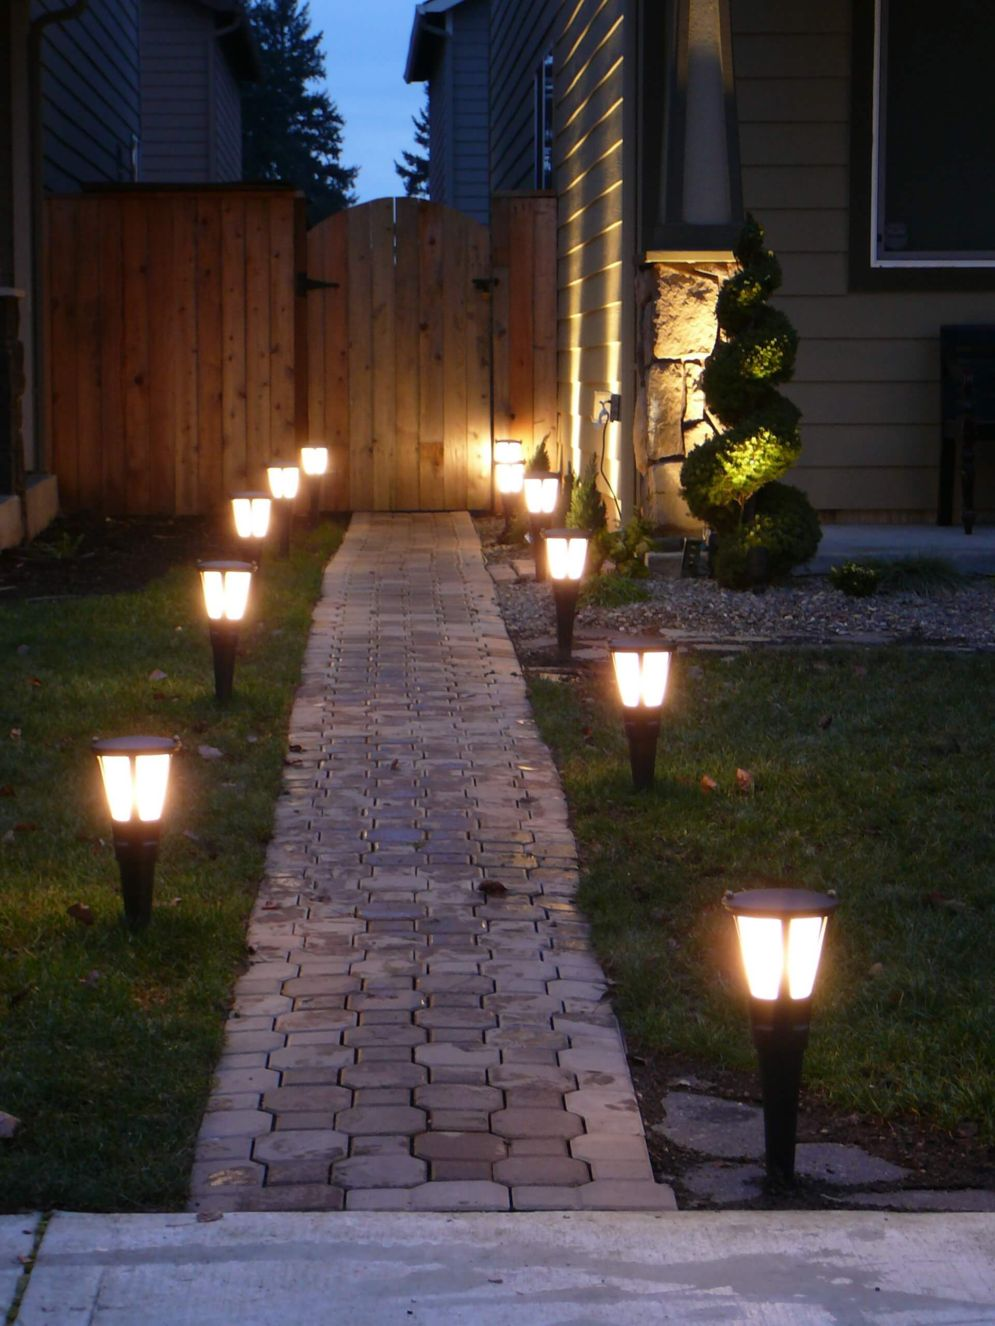 Lavish garden upgrade showing beautiful outdoor light schemes that liven up the landscape view Image 41